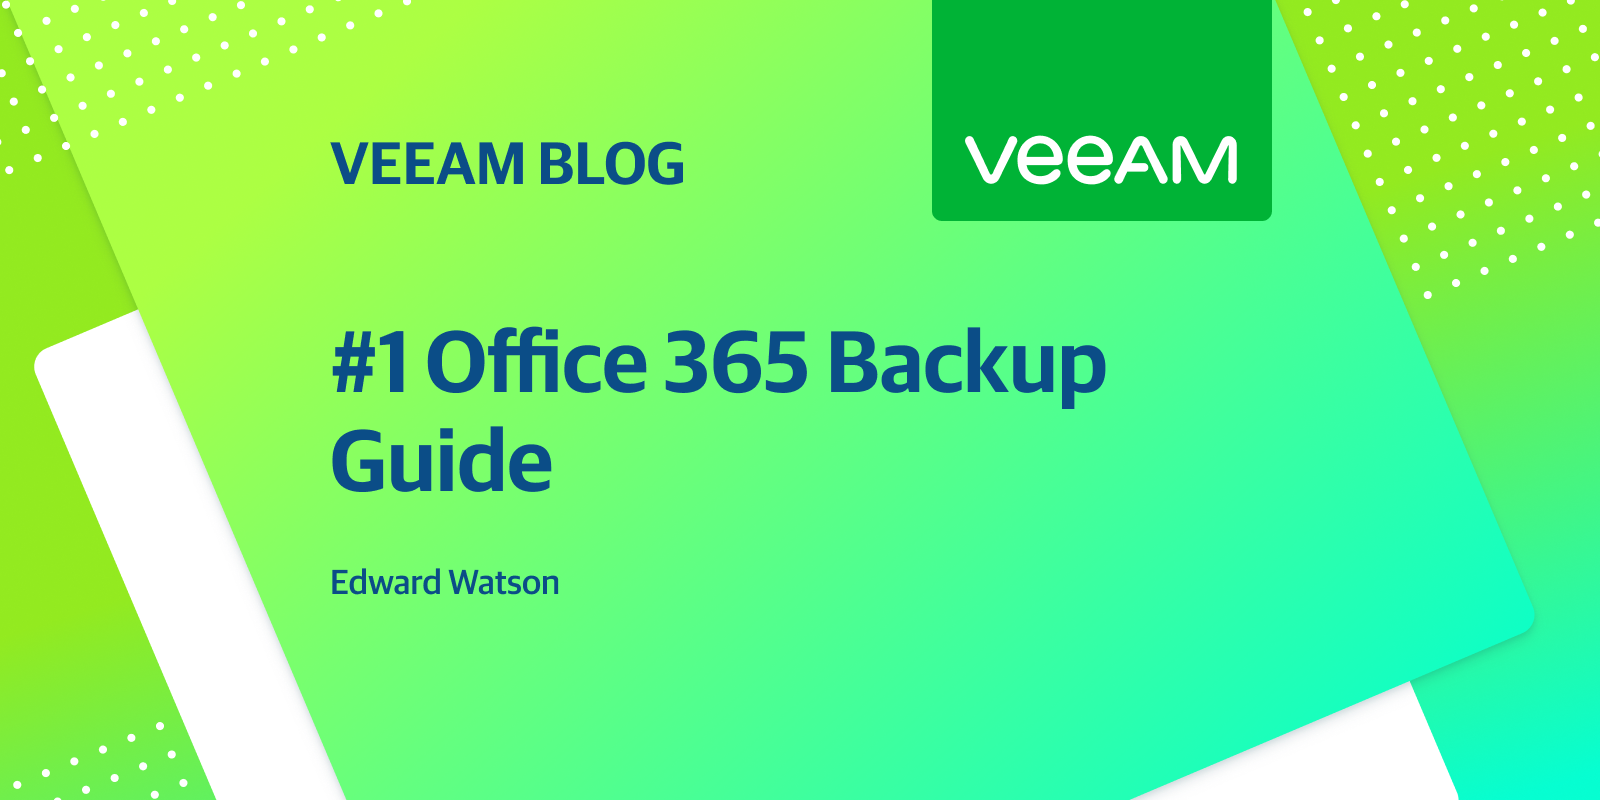 #1 Office 365 Back-up Guide